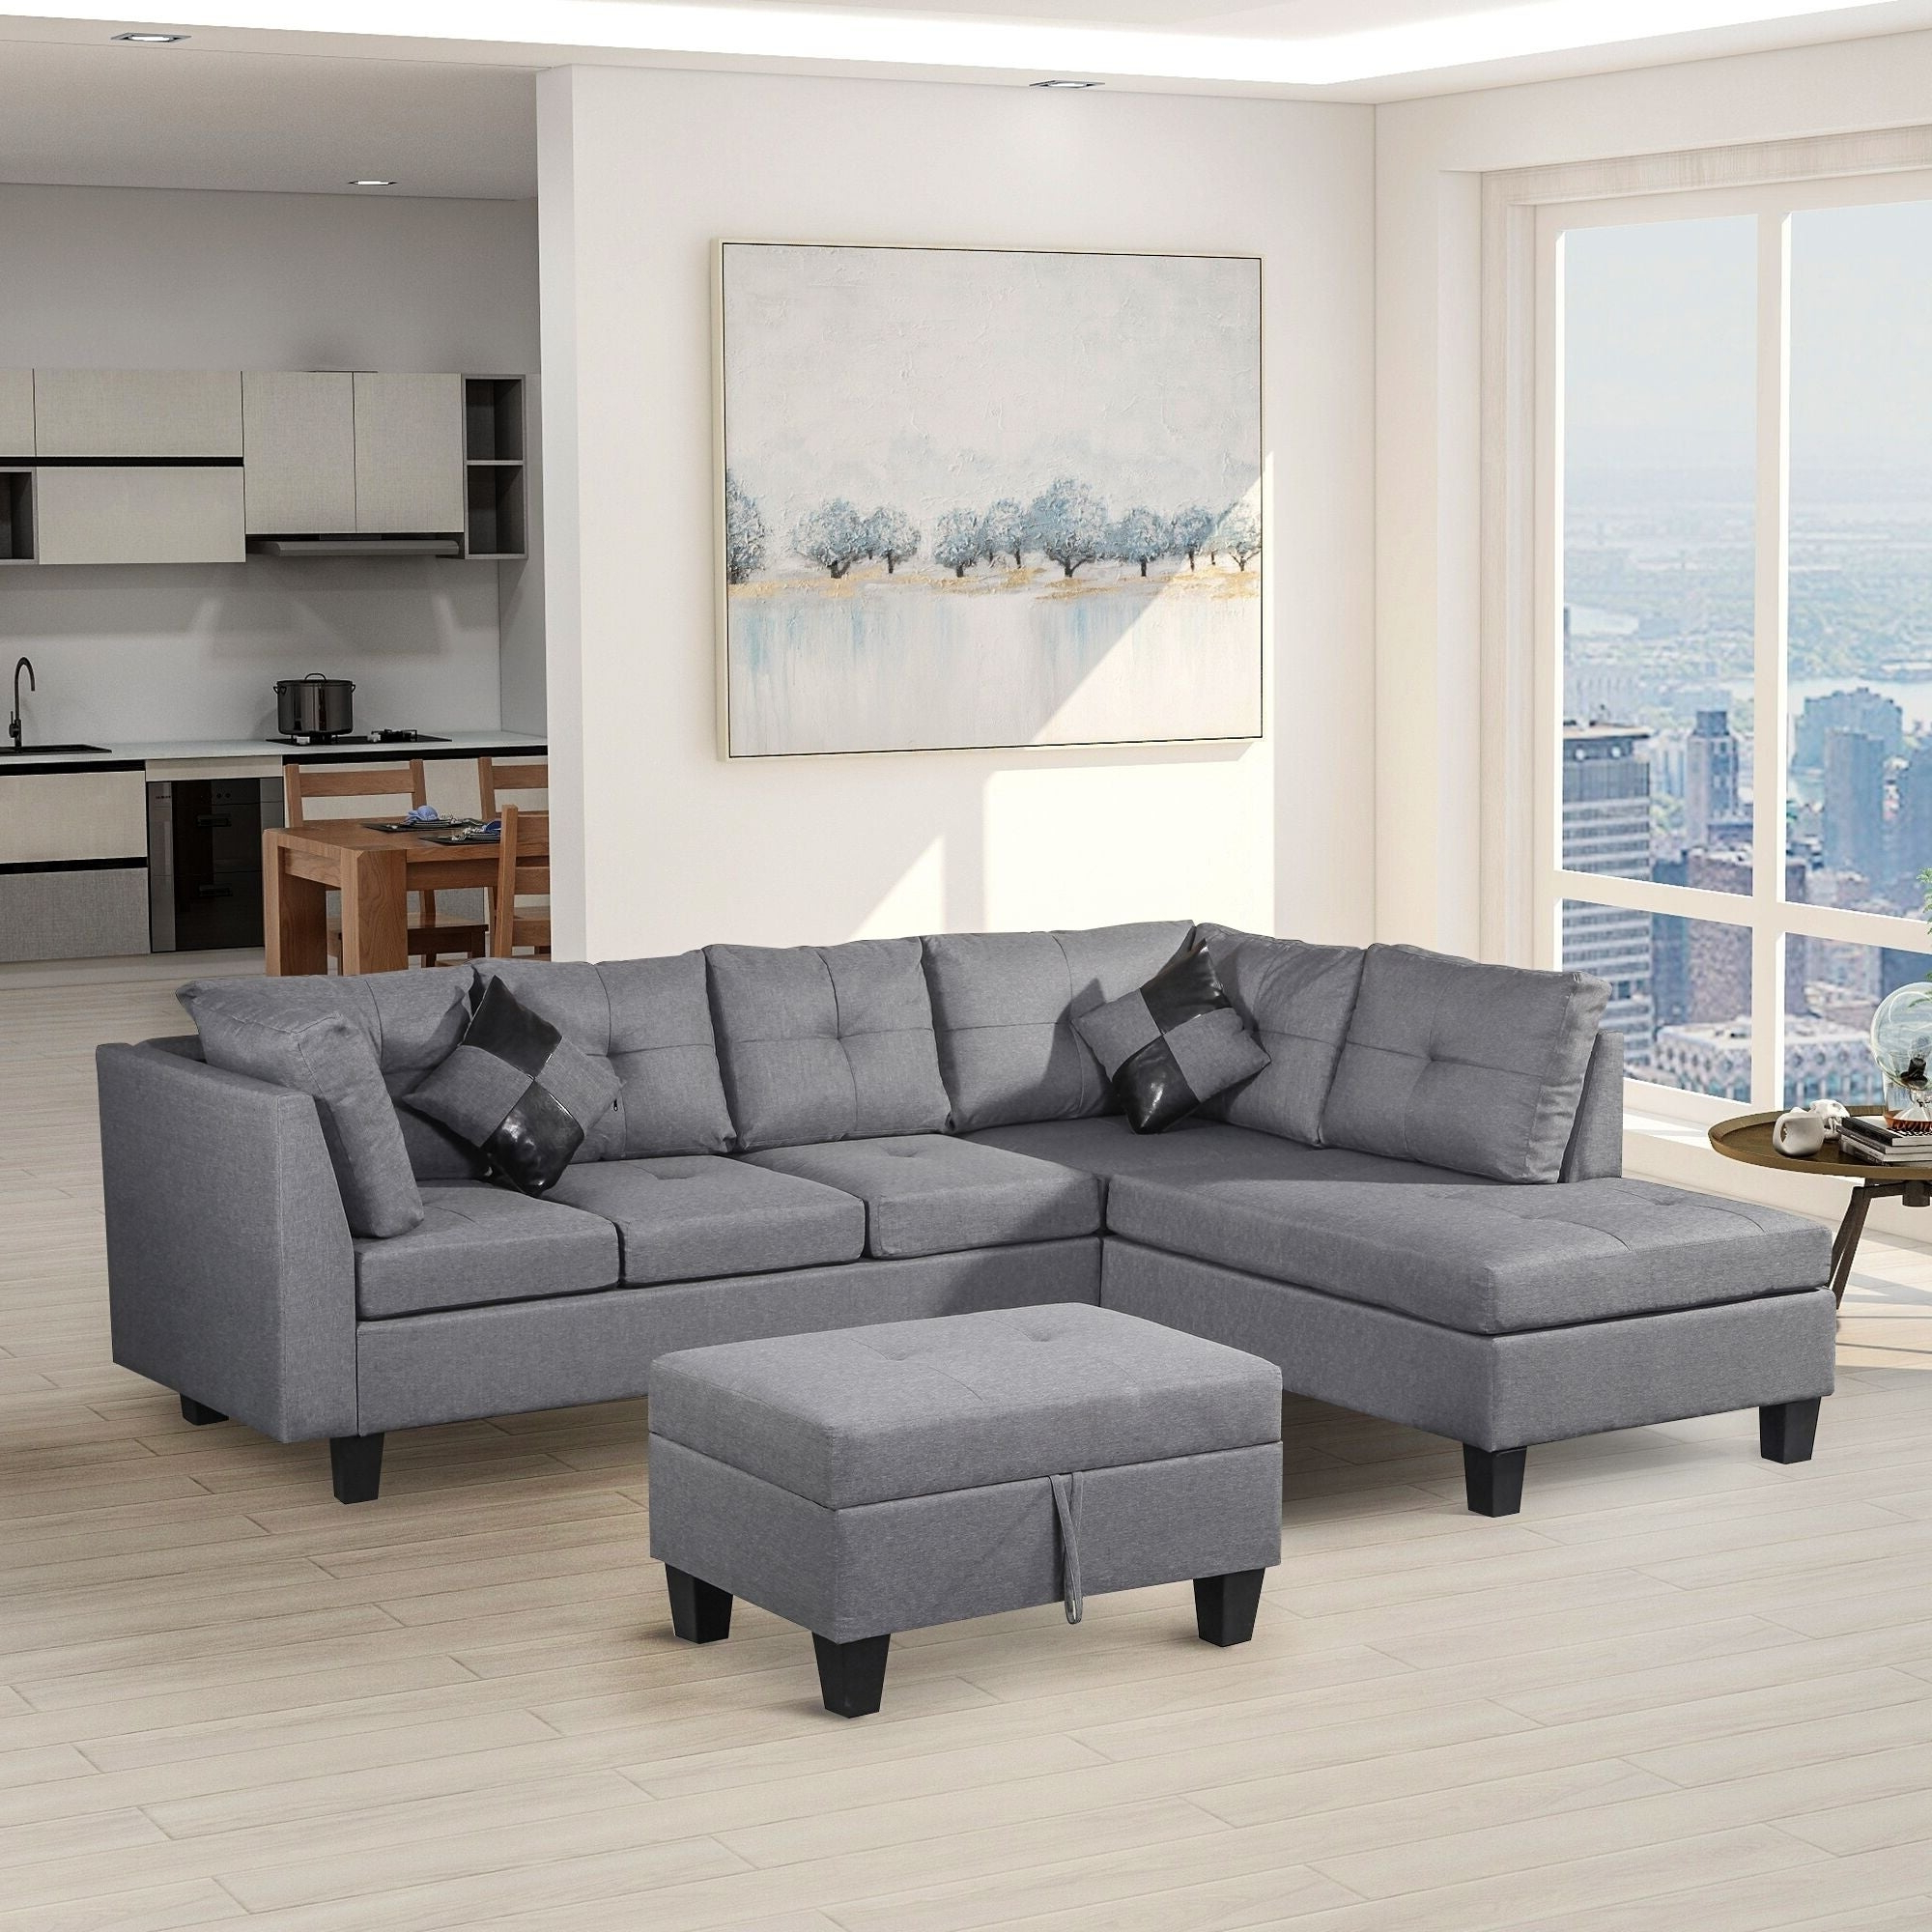 Harper & Bright Designs 3 Piece Sectional Sofa With Loveseat And Ottoman Within Best And Newest Landis Loveseats With Cushions (View 20 of 25)